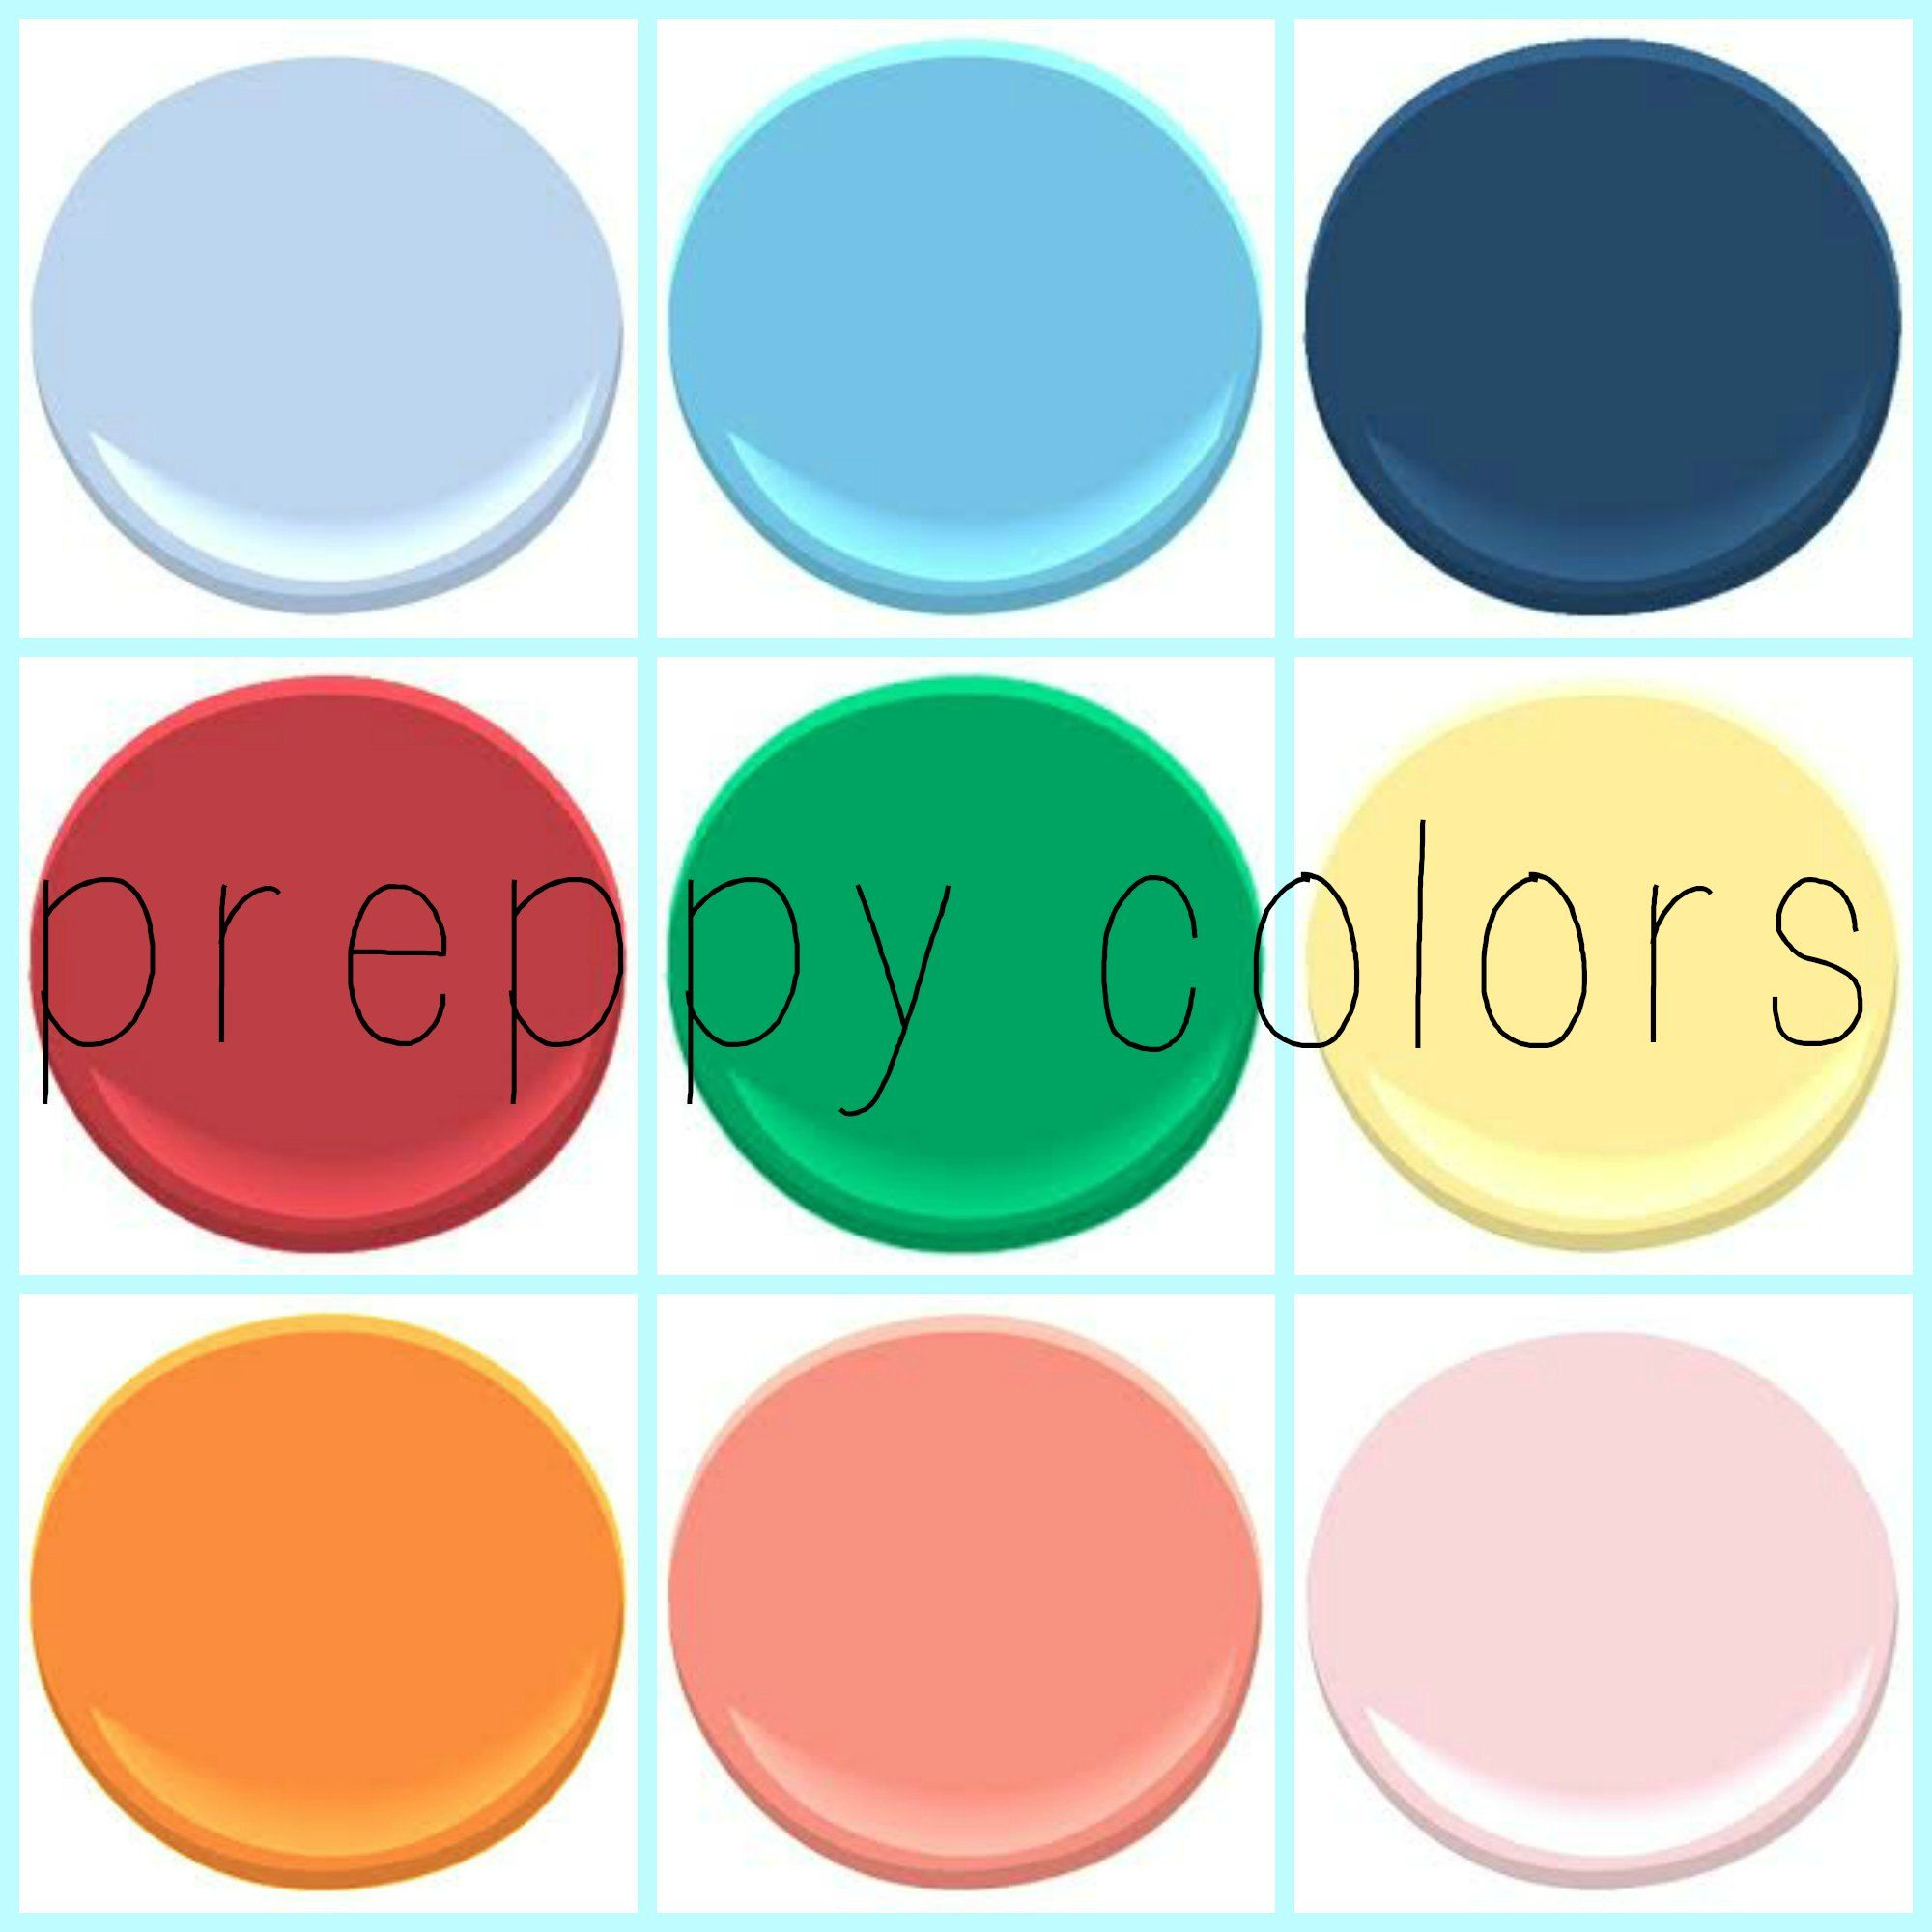 preppy colors - any direction you go, these colors compliment each ...